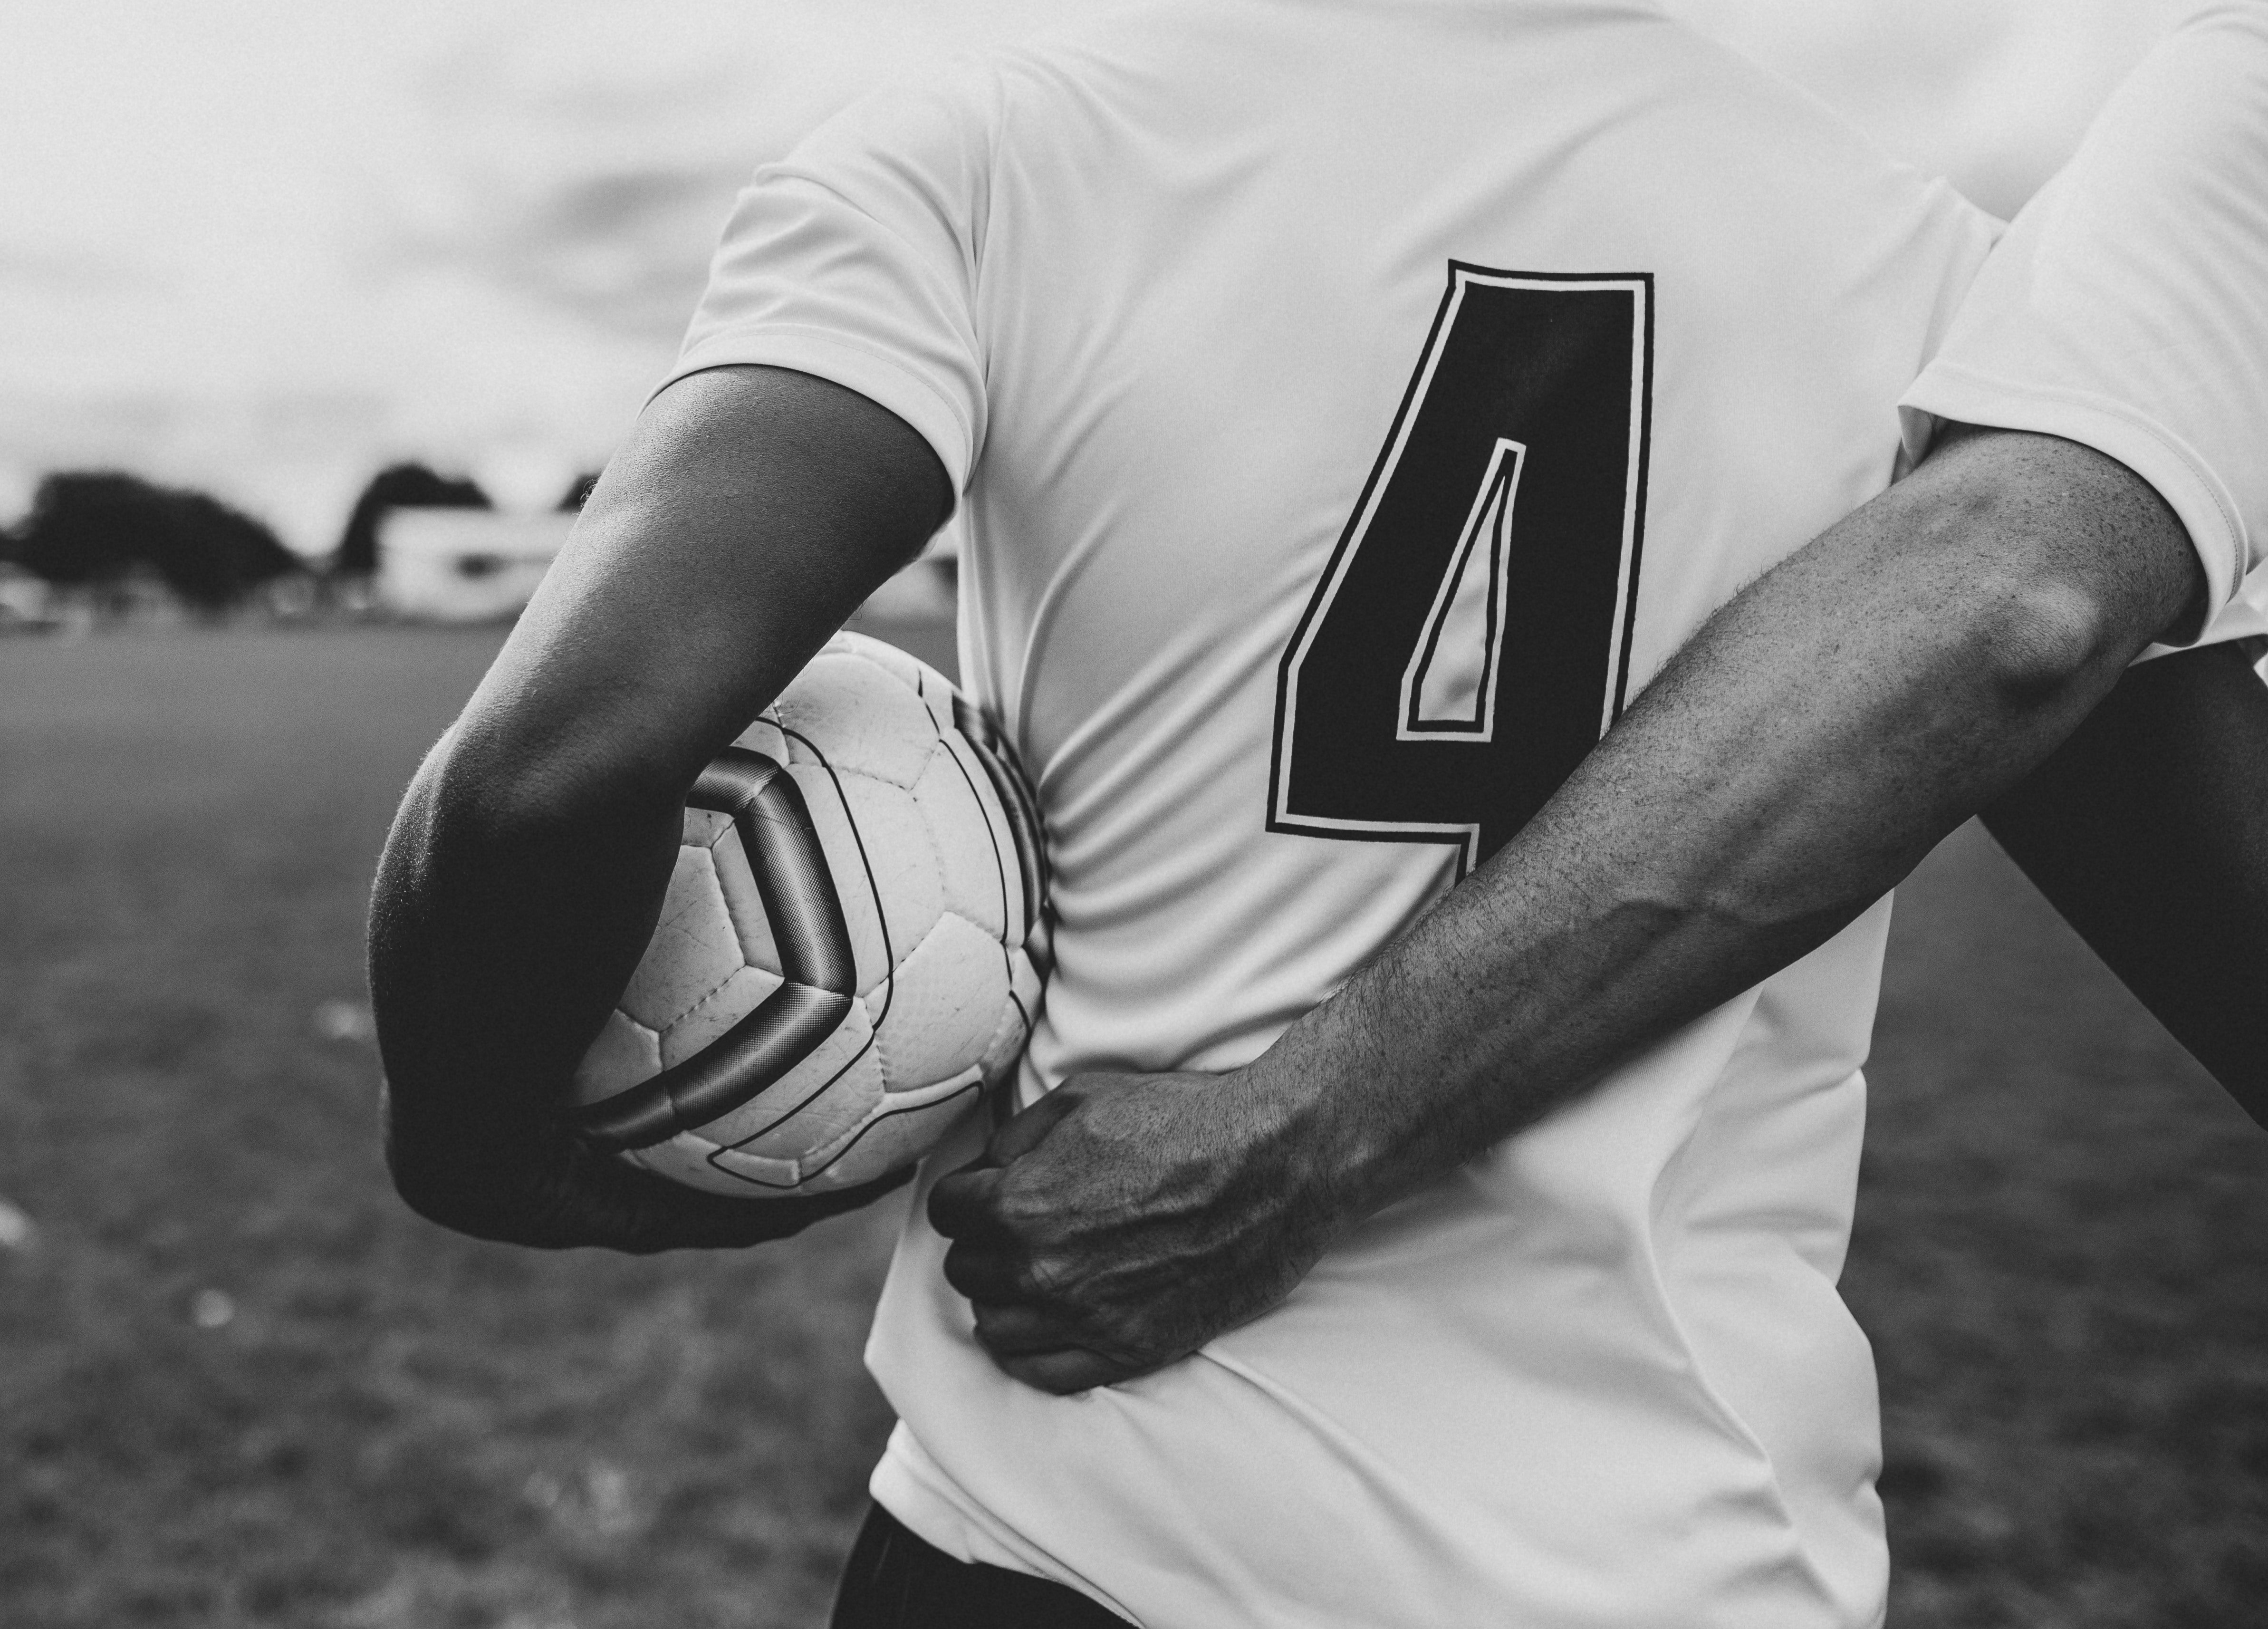 athletes-ball-black-and-white-1594932